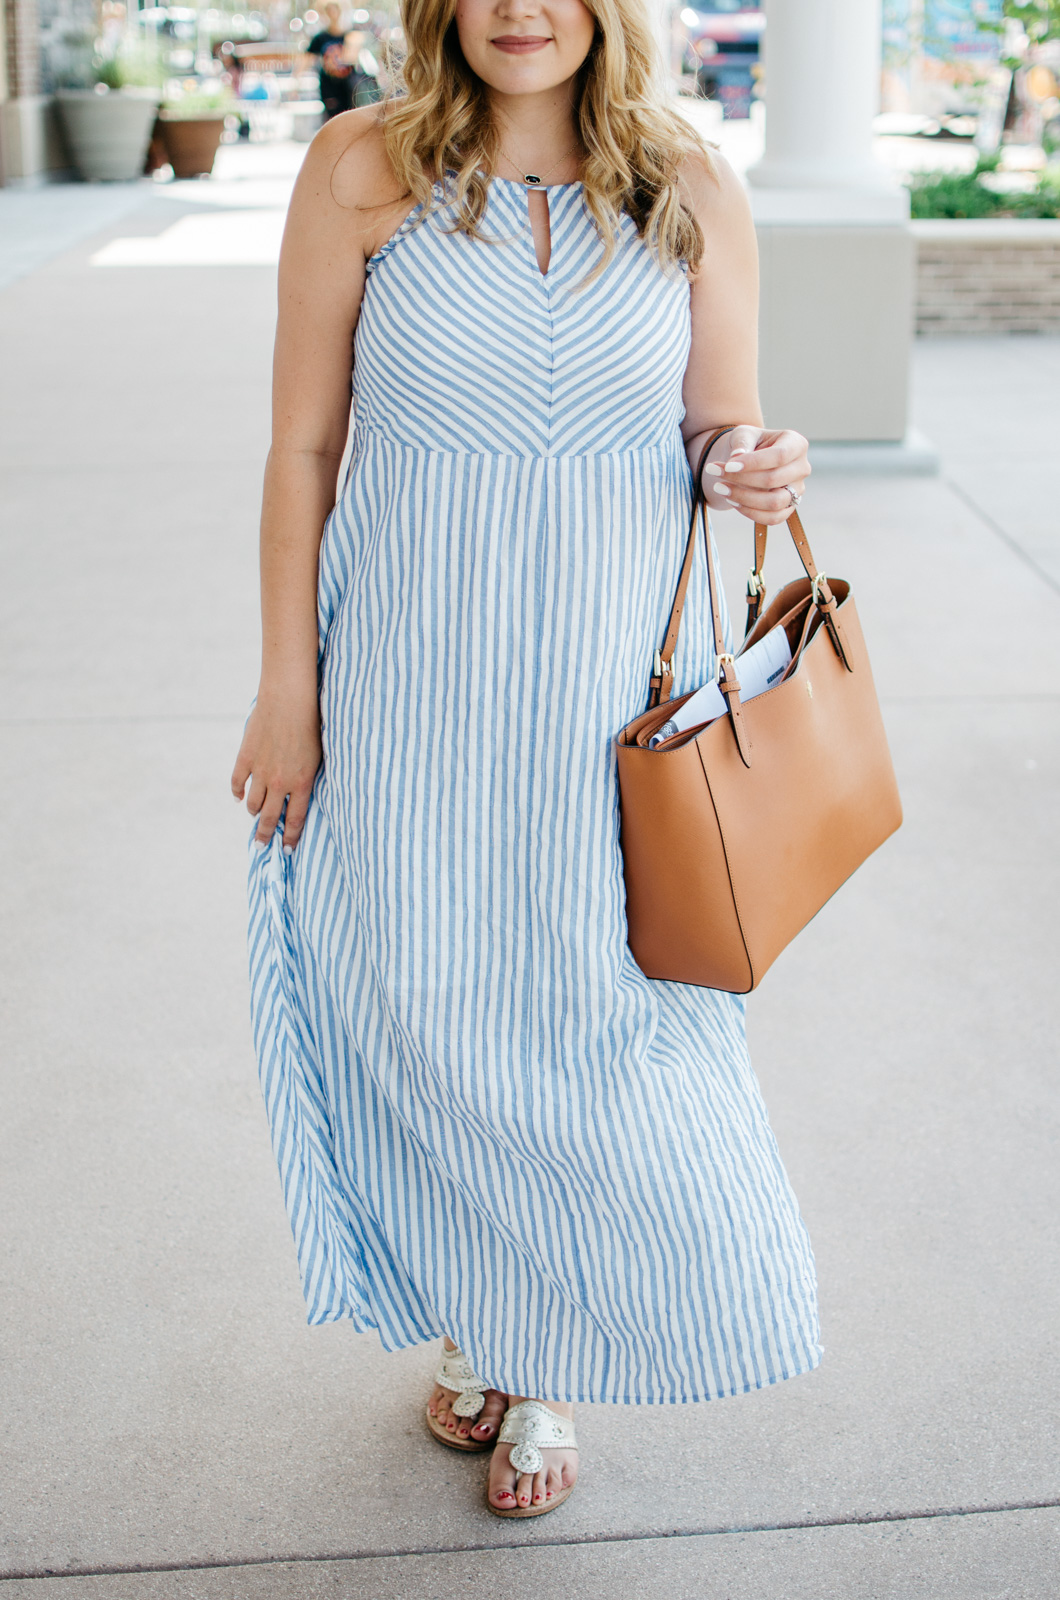 summer maxi dress outfit - seersucker maxi dress | For more cute Summer outfit ideas, go to bylaurenm.com!